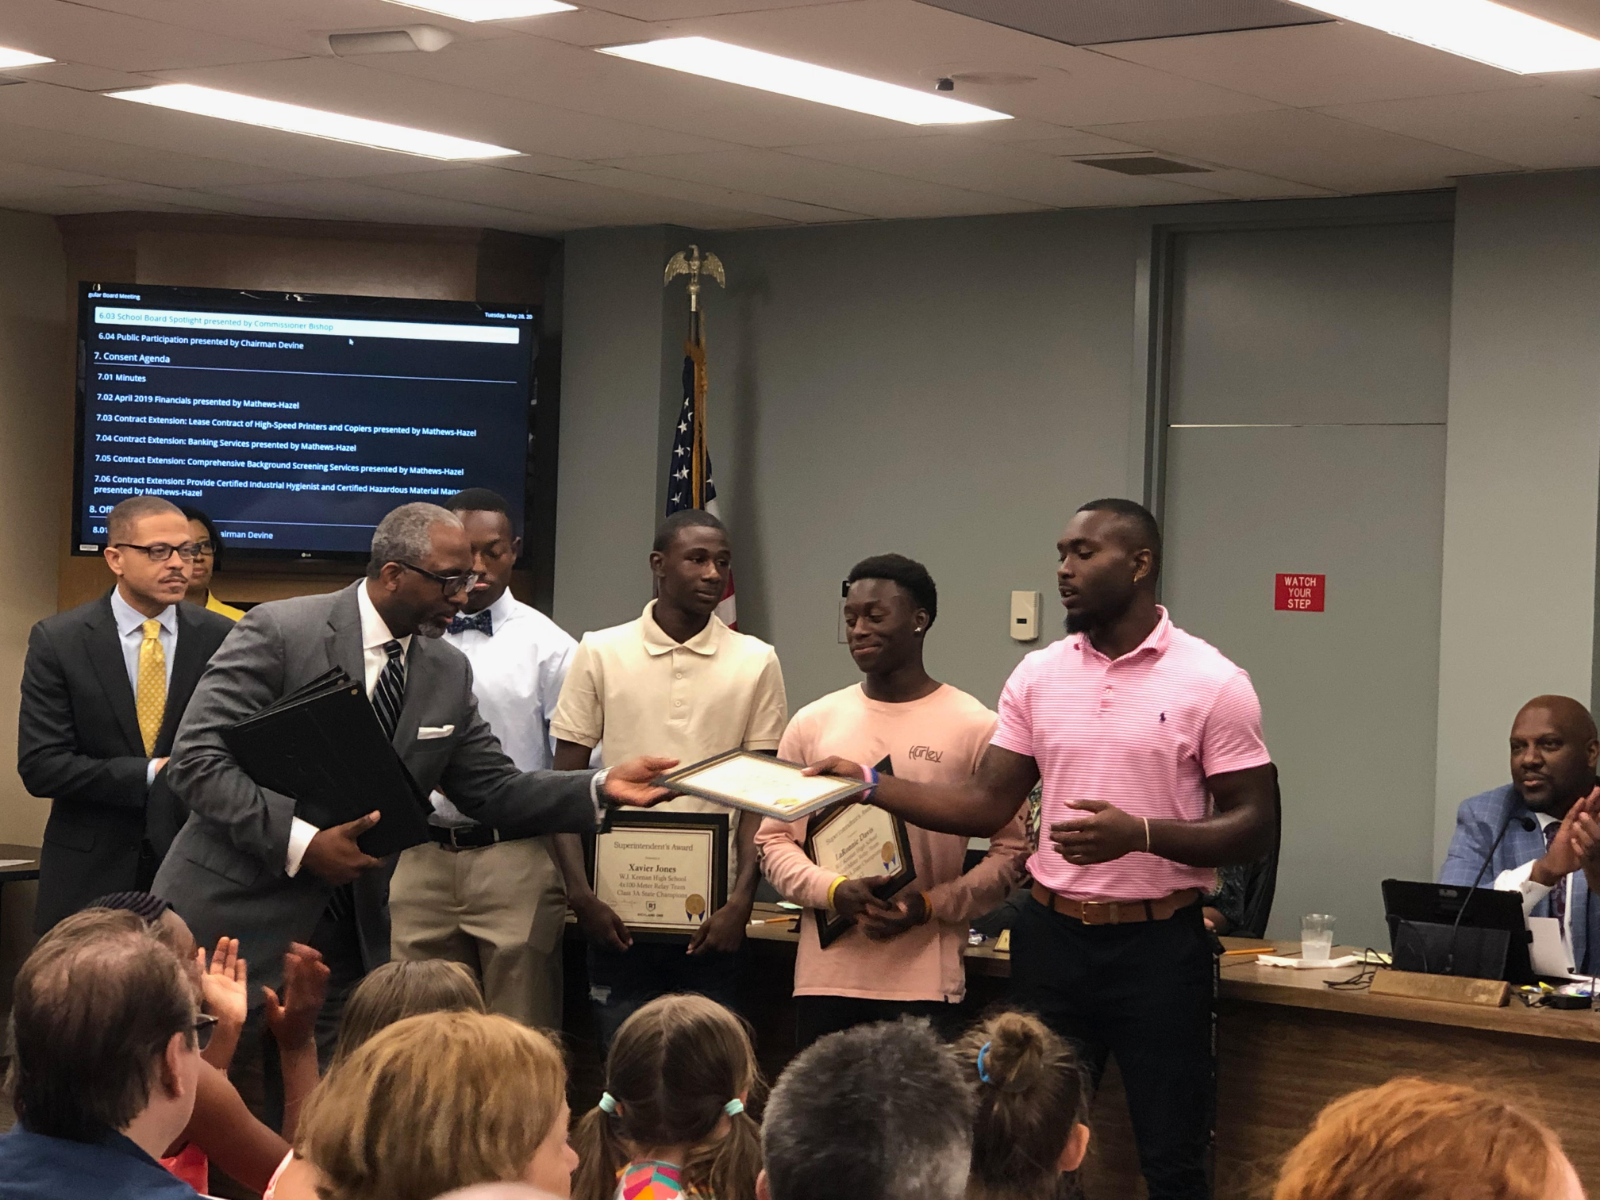 Boys Raider Track Team Recognized at Richland One Board Meeting For State Honors